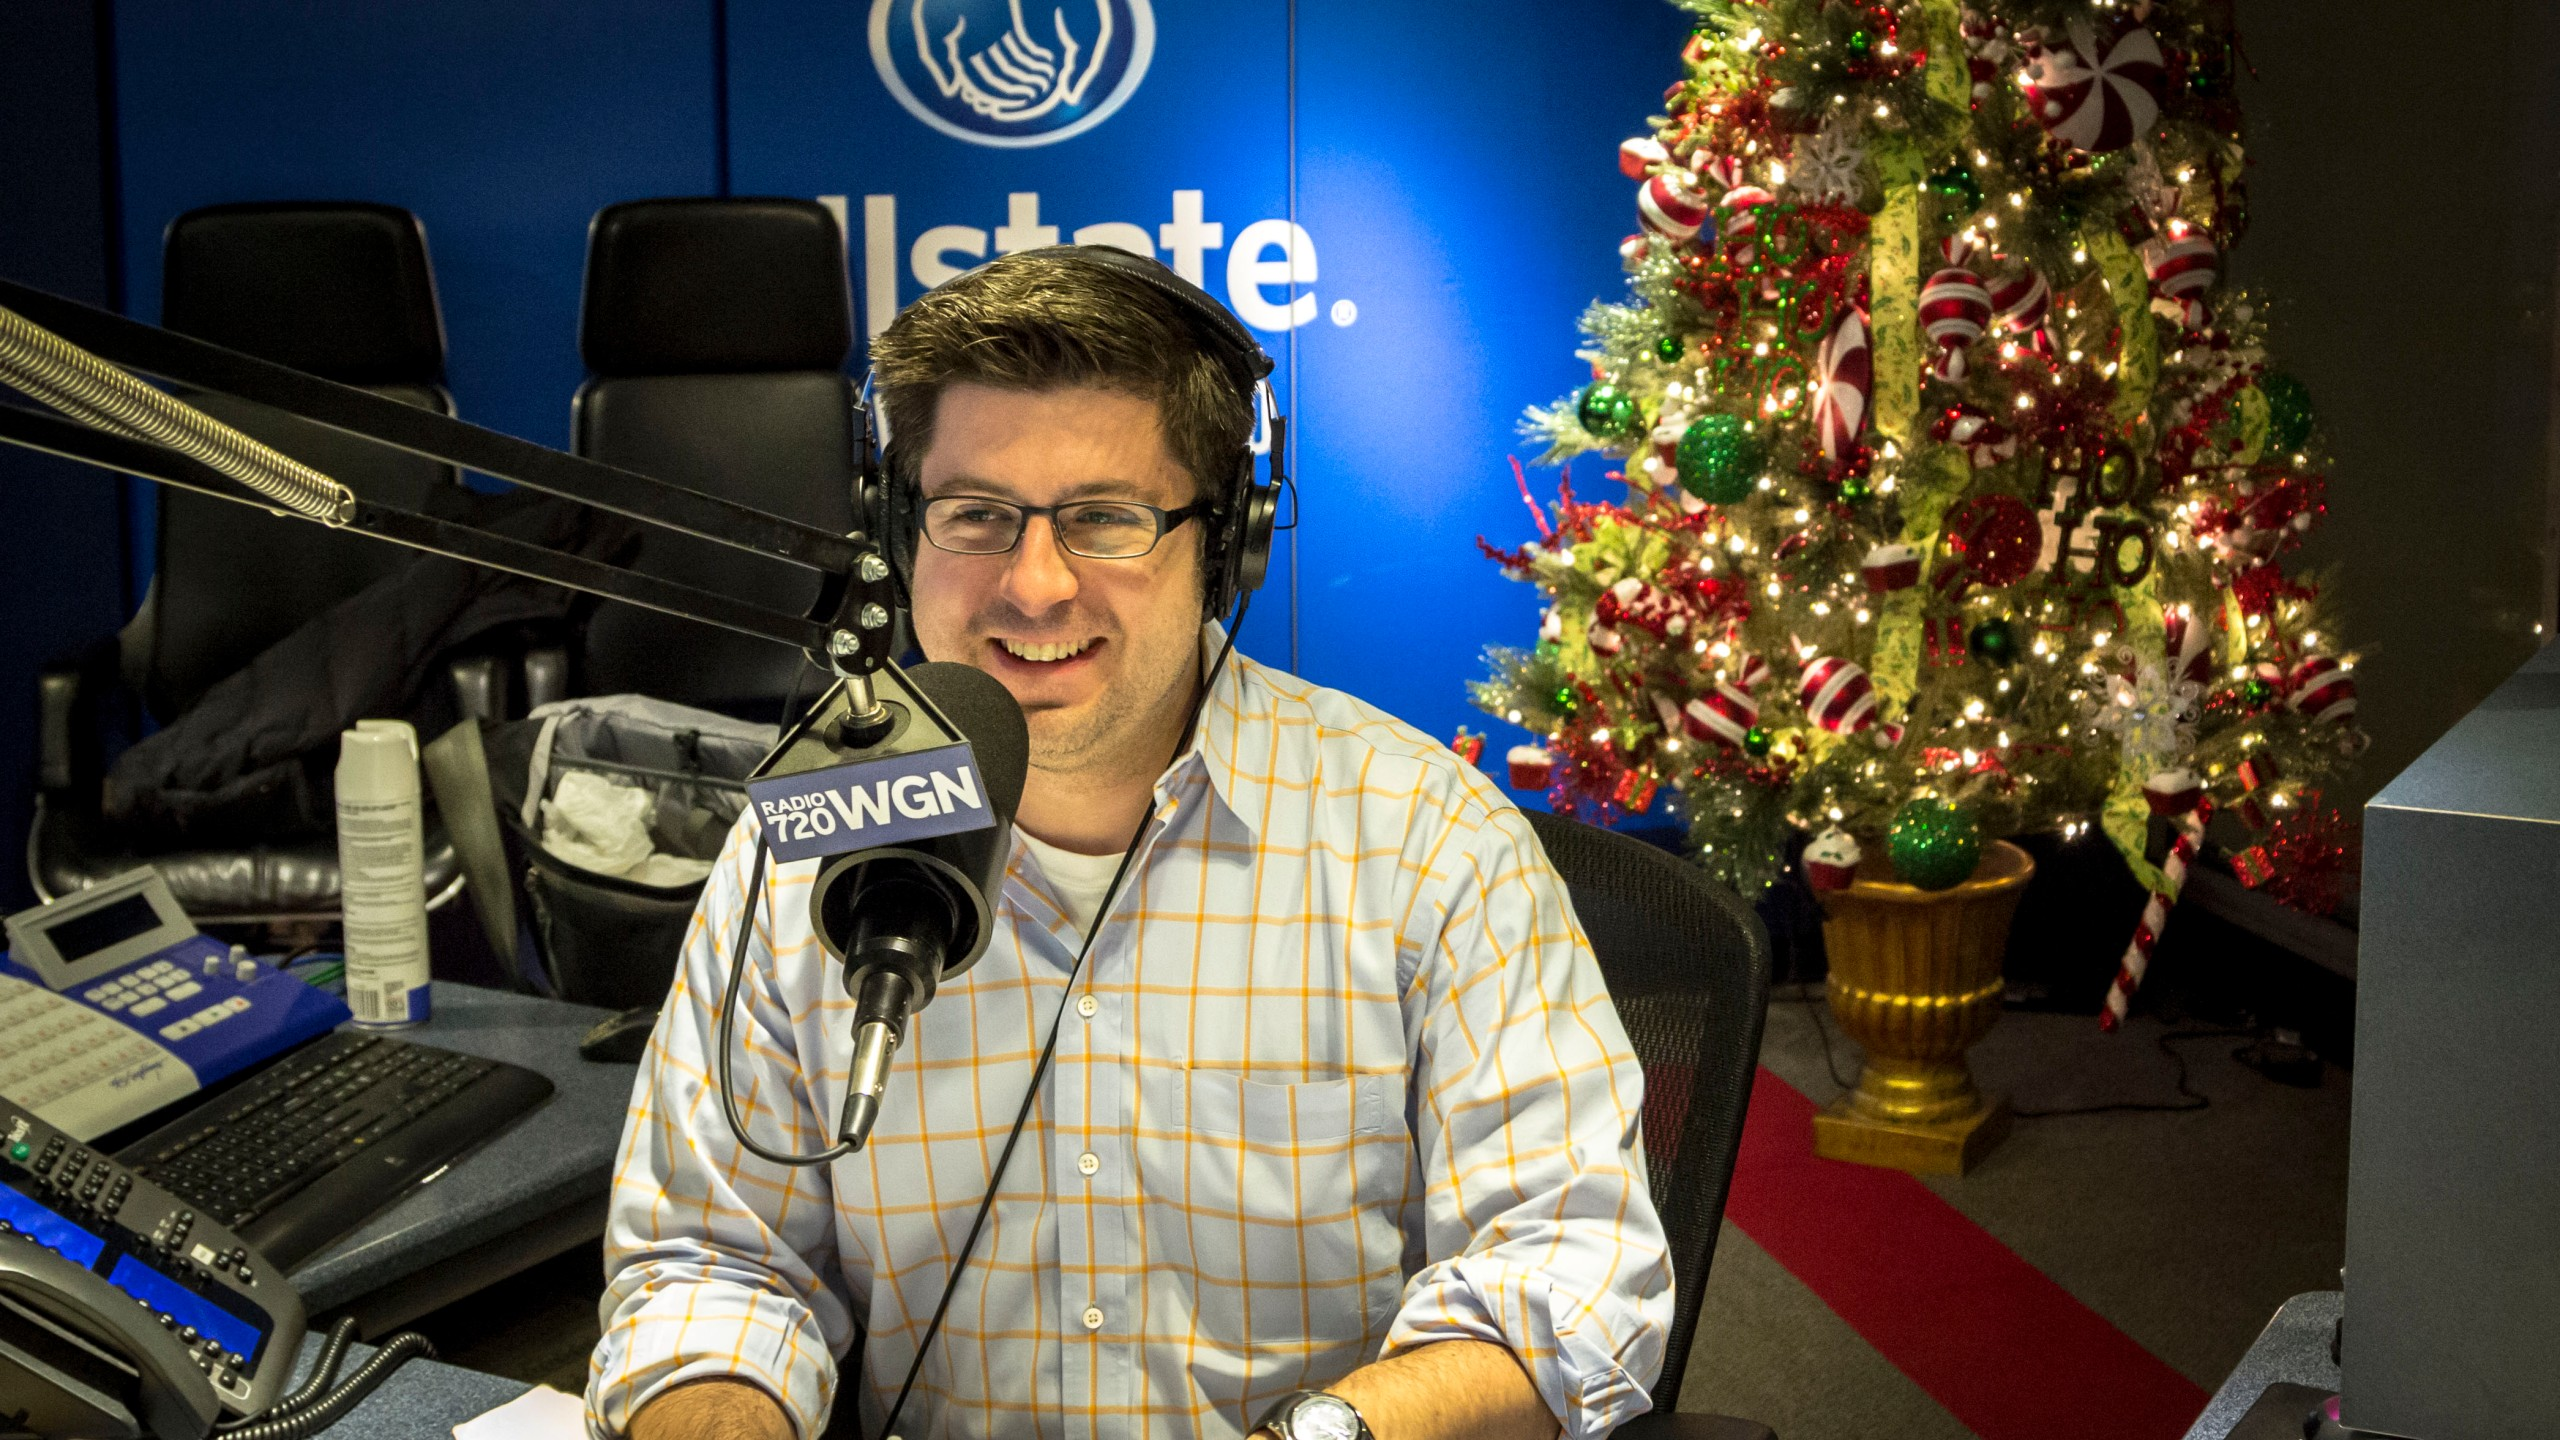 OTL host Mike Stephen always dresses a little nicer around the holidays. Nice shirt!